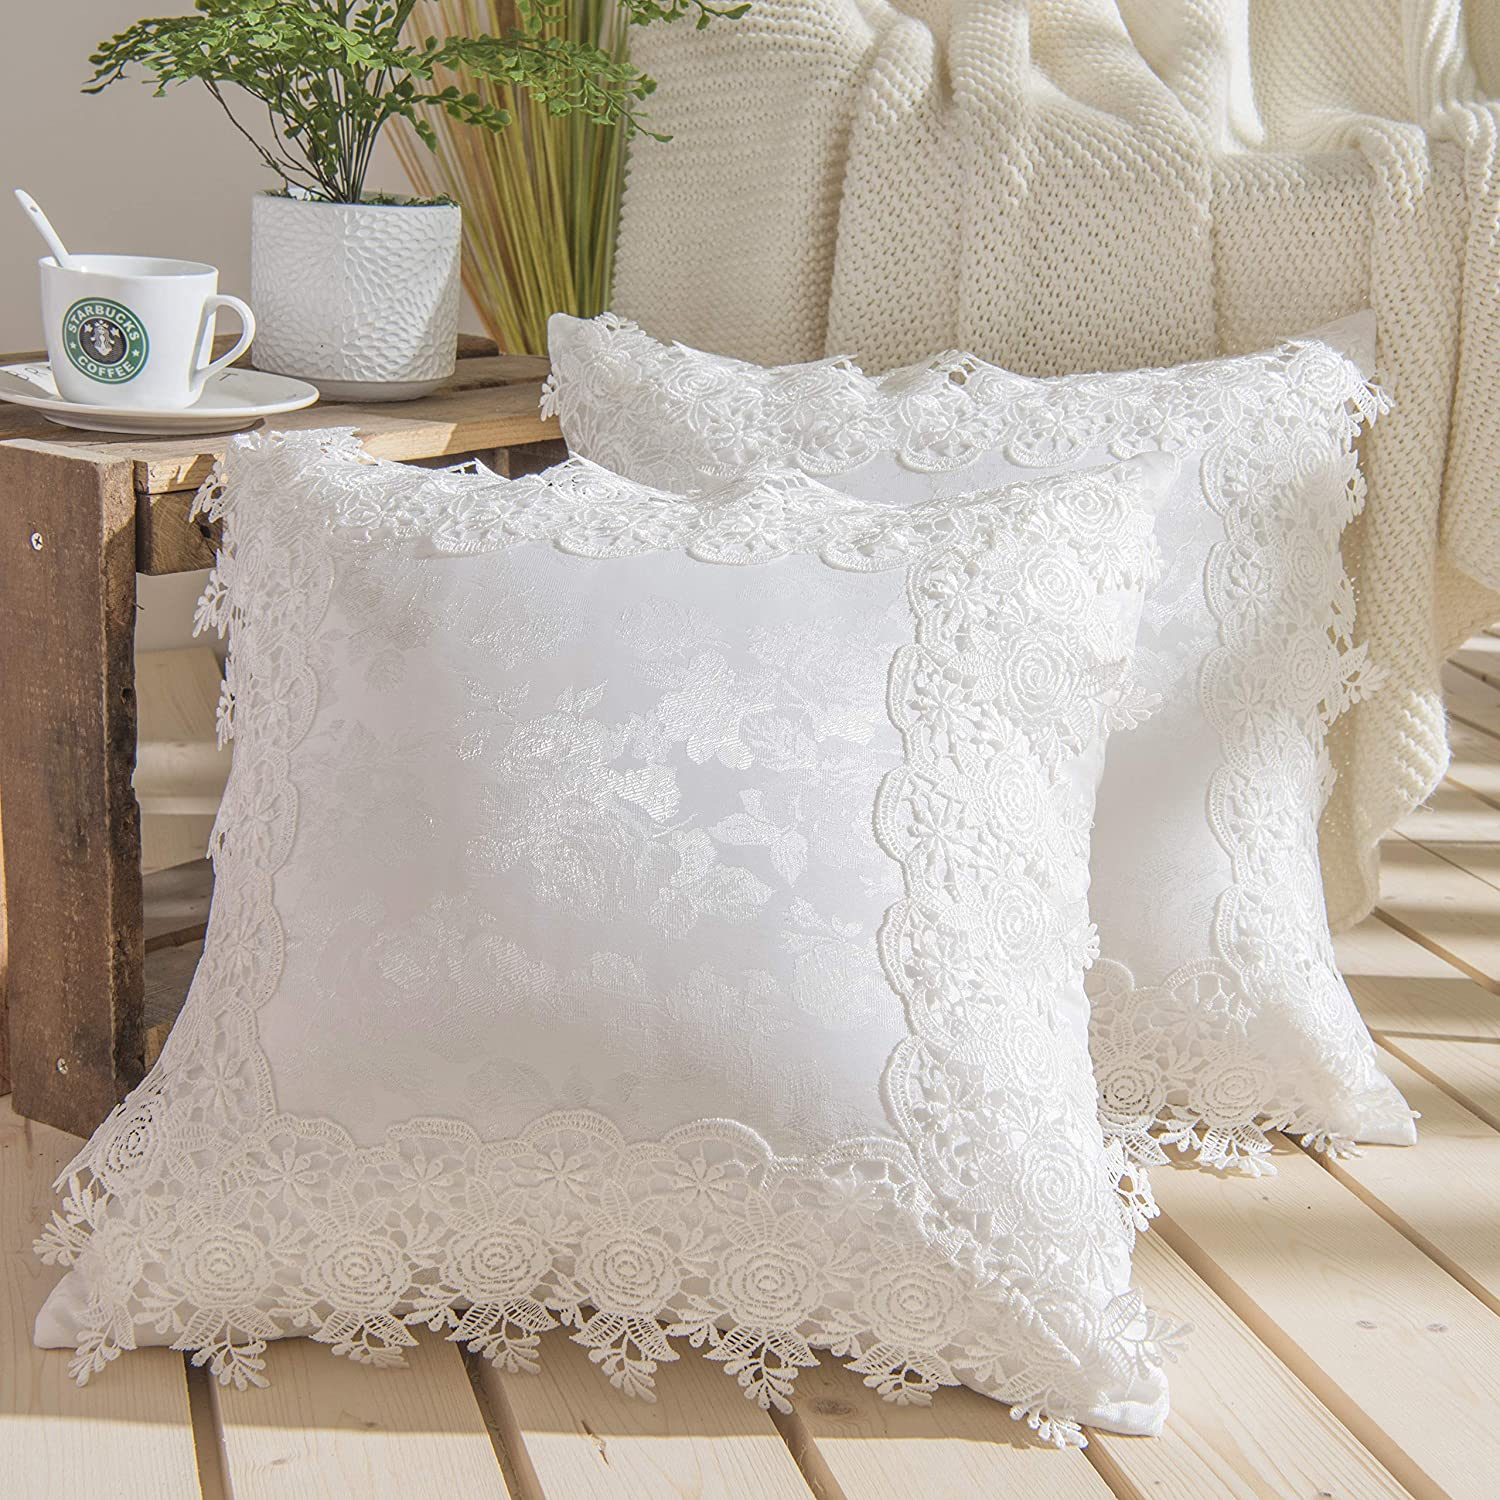 Vintage Ruffles Lace Embroidery Flower Pillow Case Cover Cushion Cover Standard